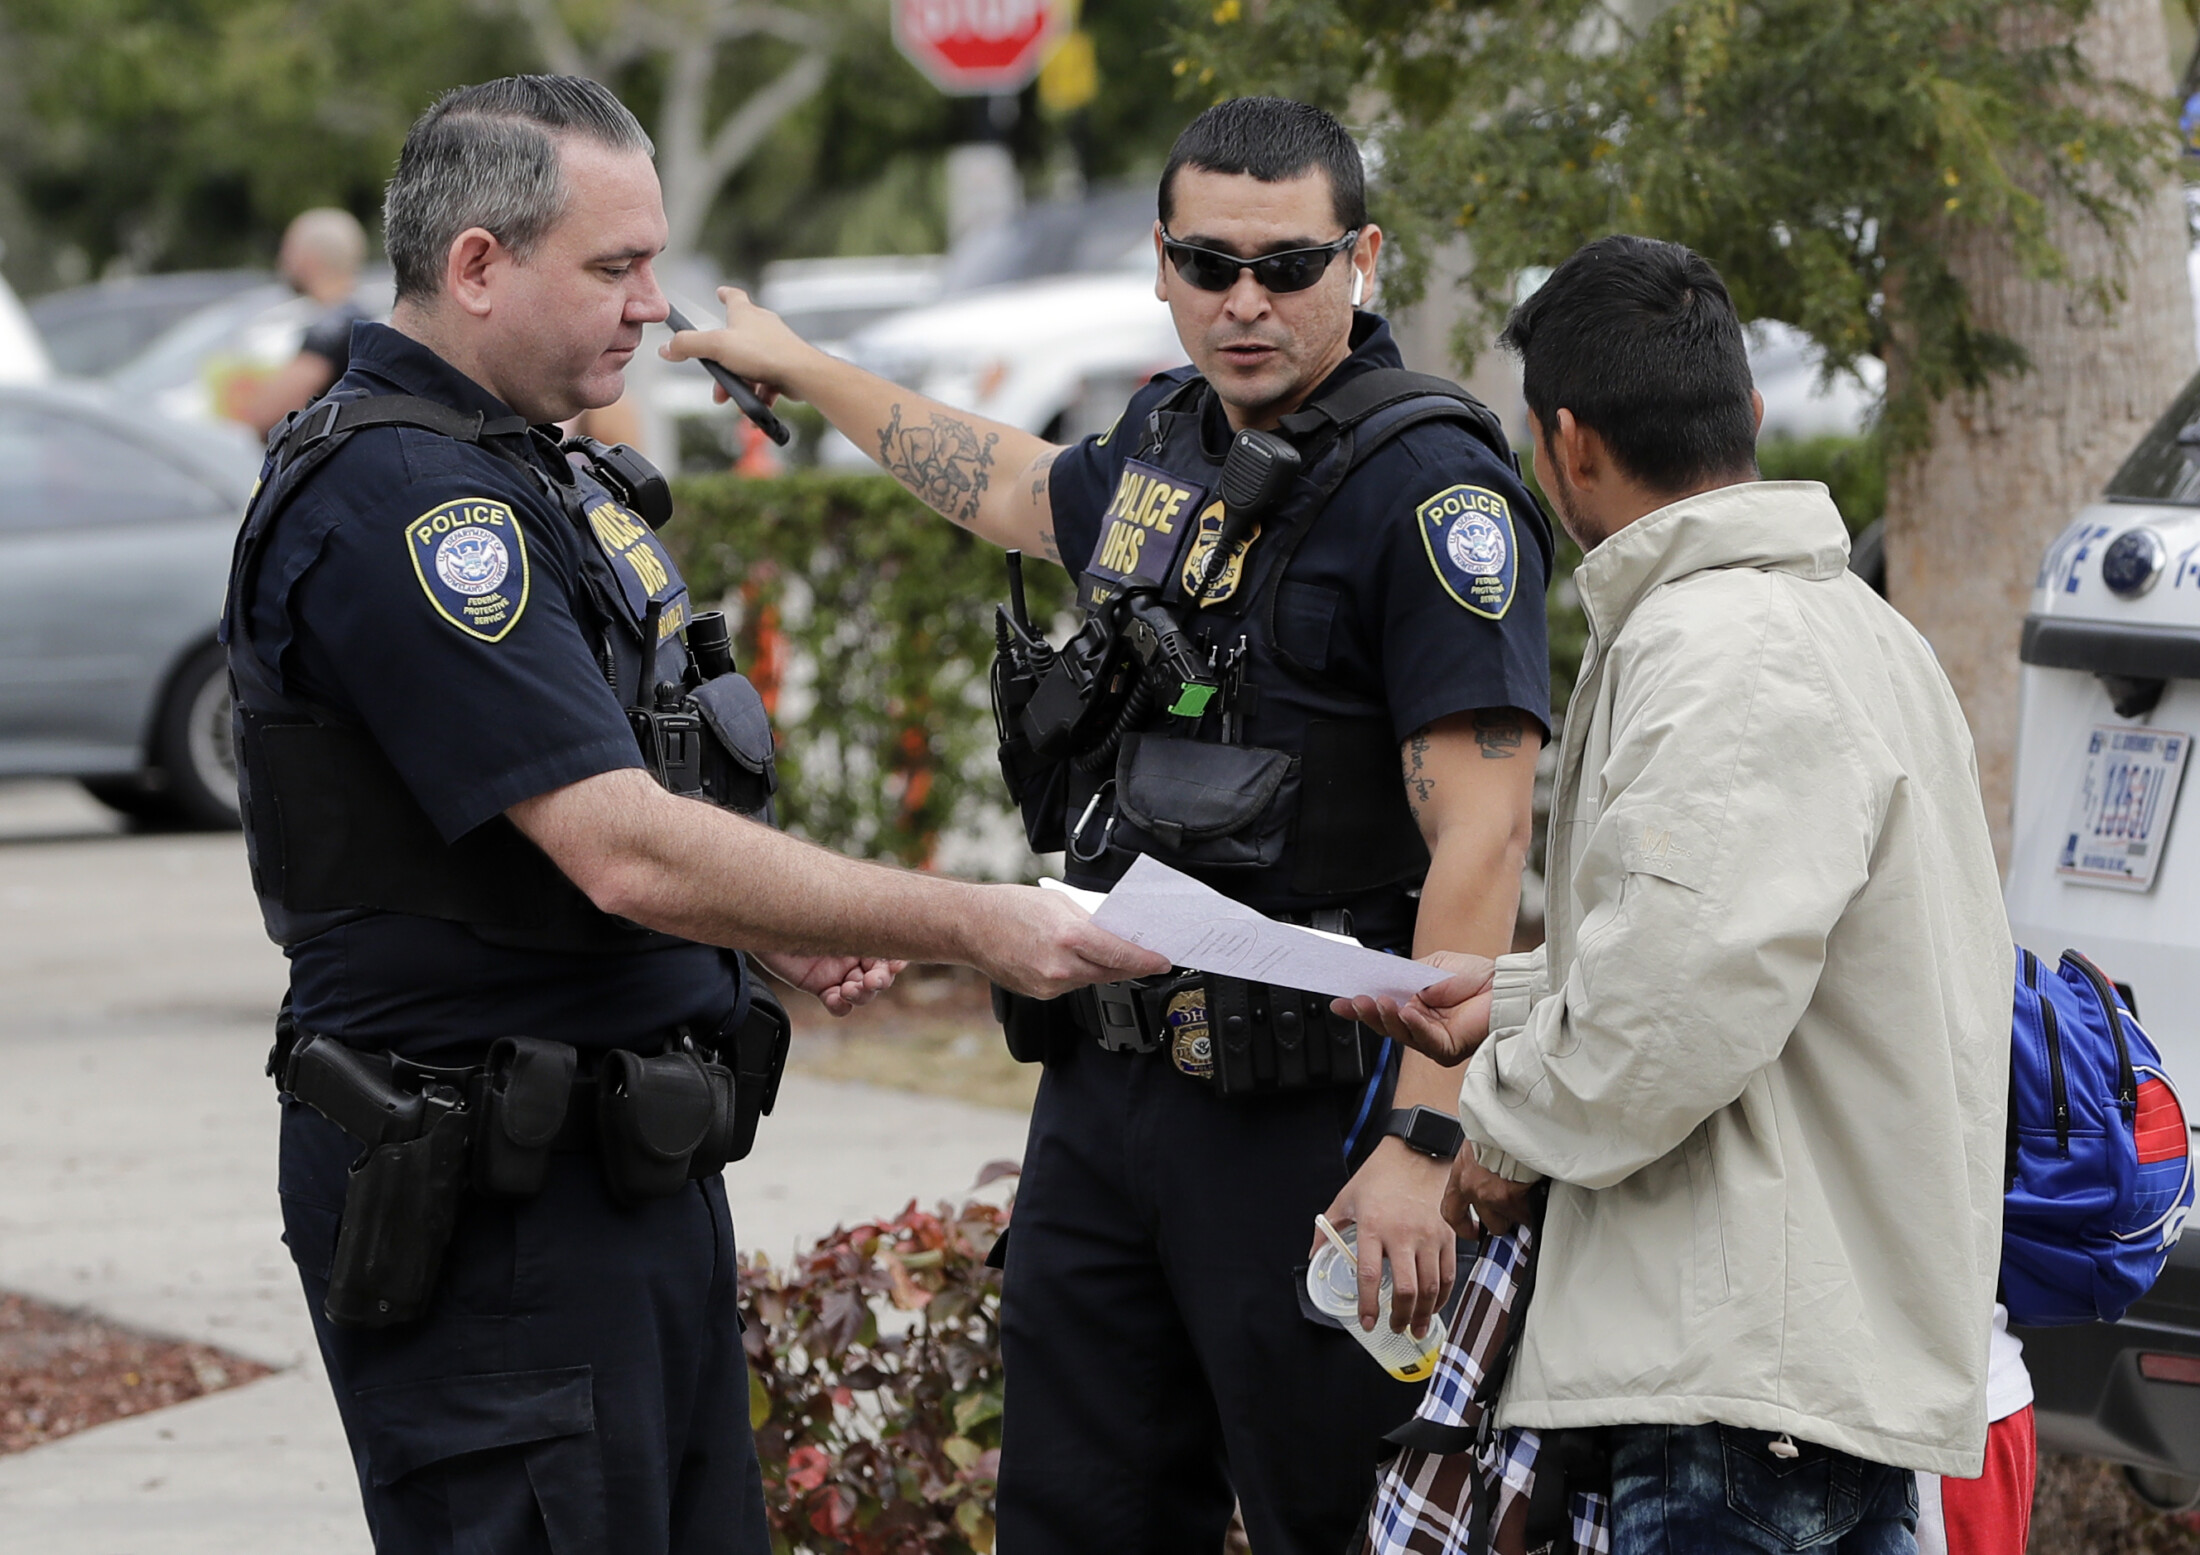 Homeland Security police direct people where to go outside a U.S. Immigration and Customs Enforcement facility this year in Miramar, Fla. Maine lawmakers are considering two bills with different policies on how local police officers would interact with federal immigration officers.